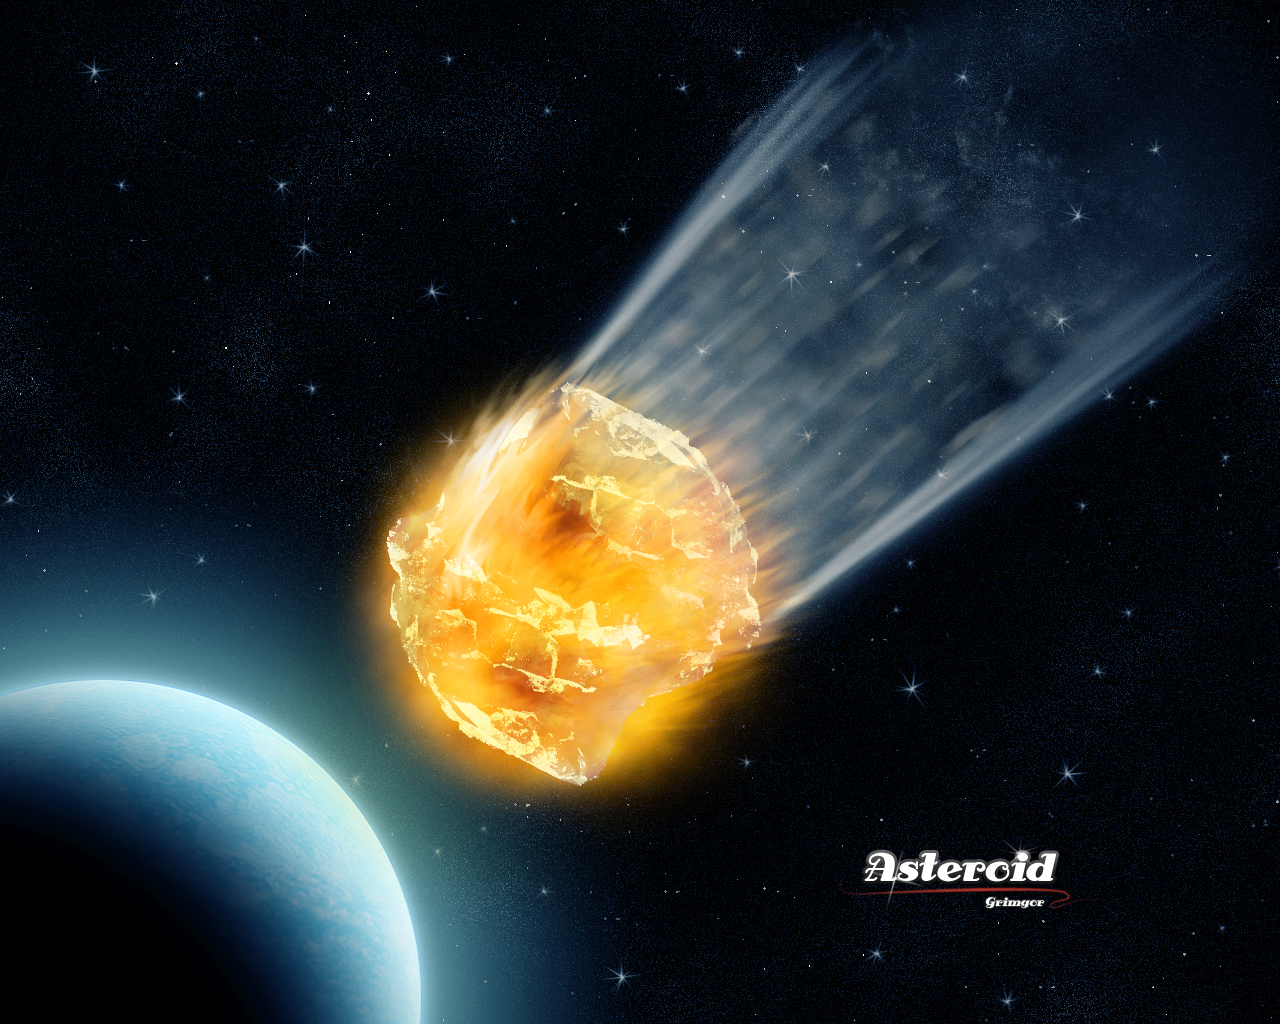 Asteroid by GRlMGOR on DeviantArt